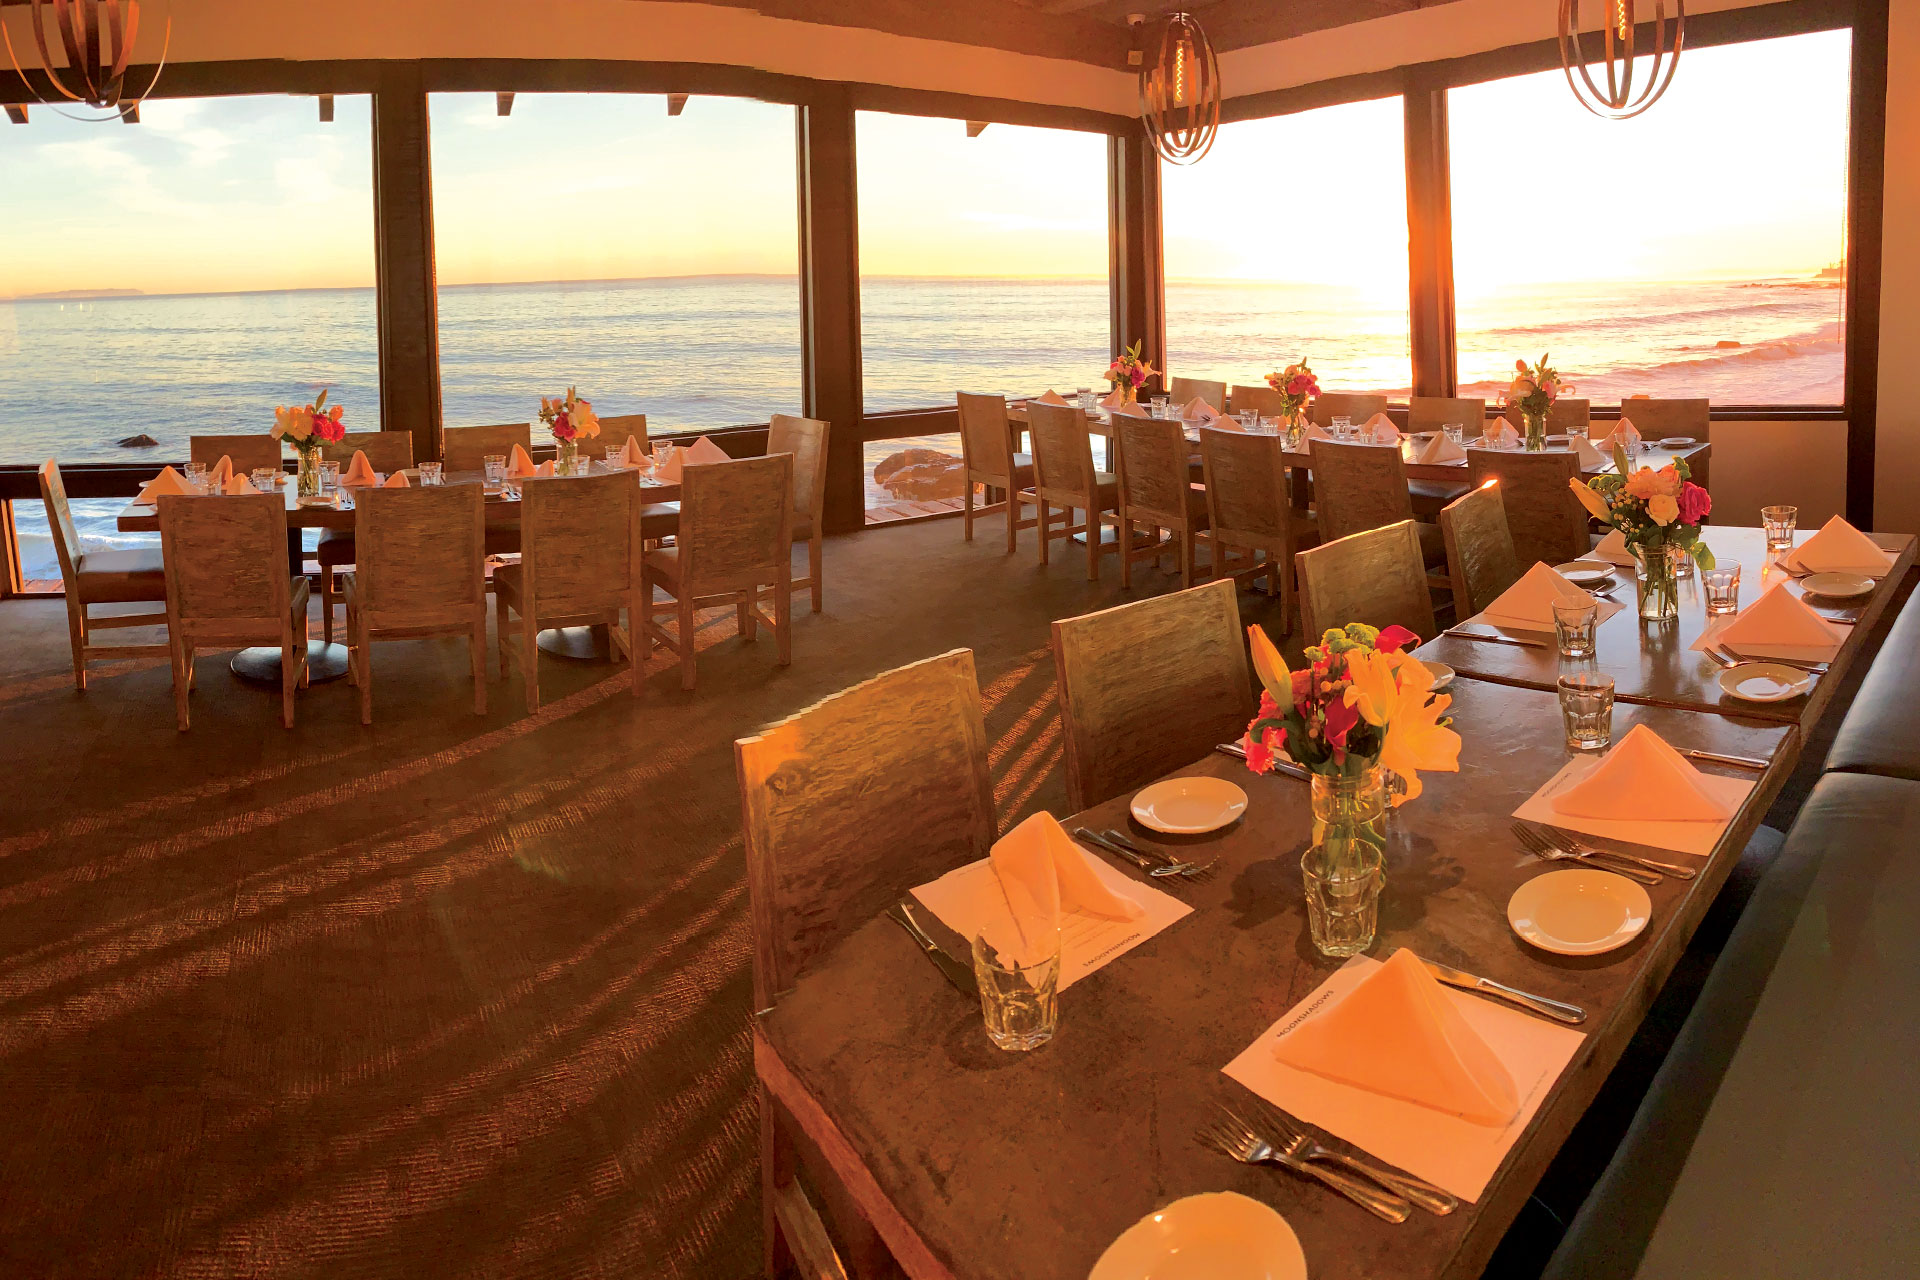 Private party set during sunset